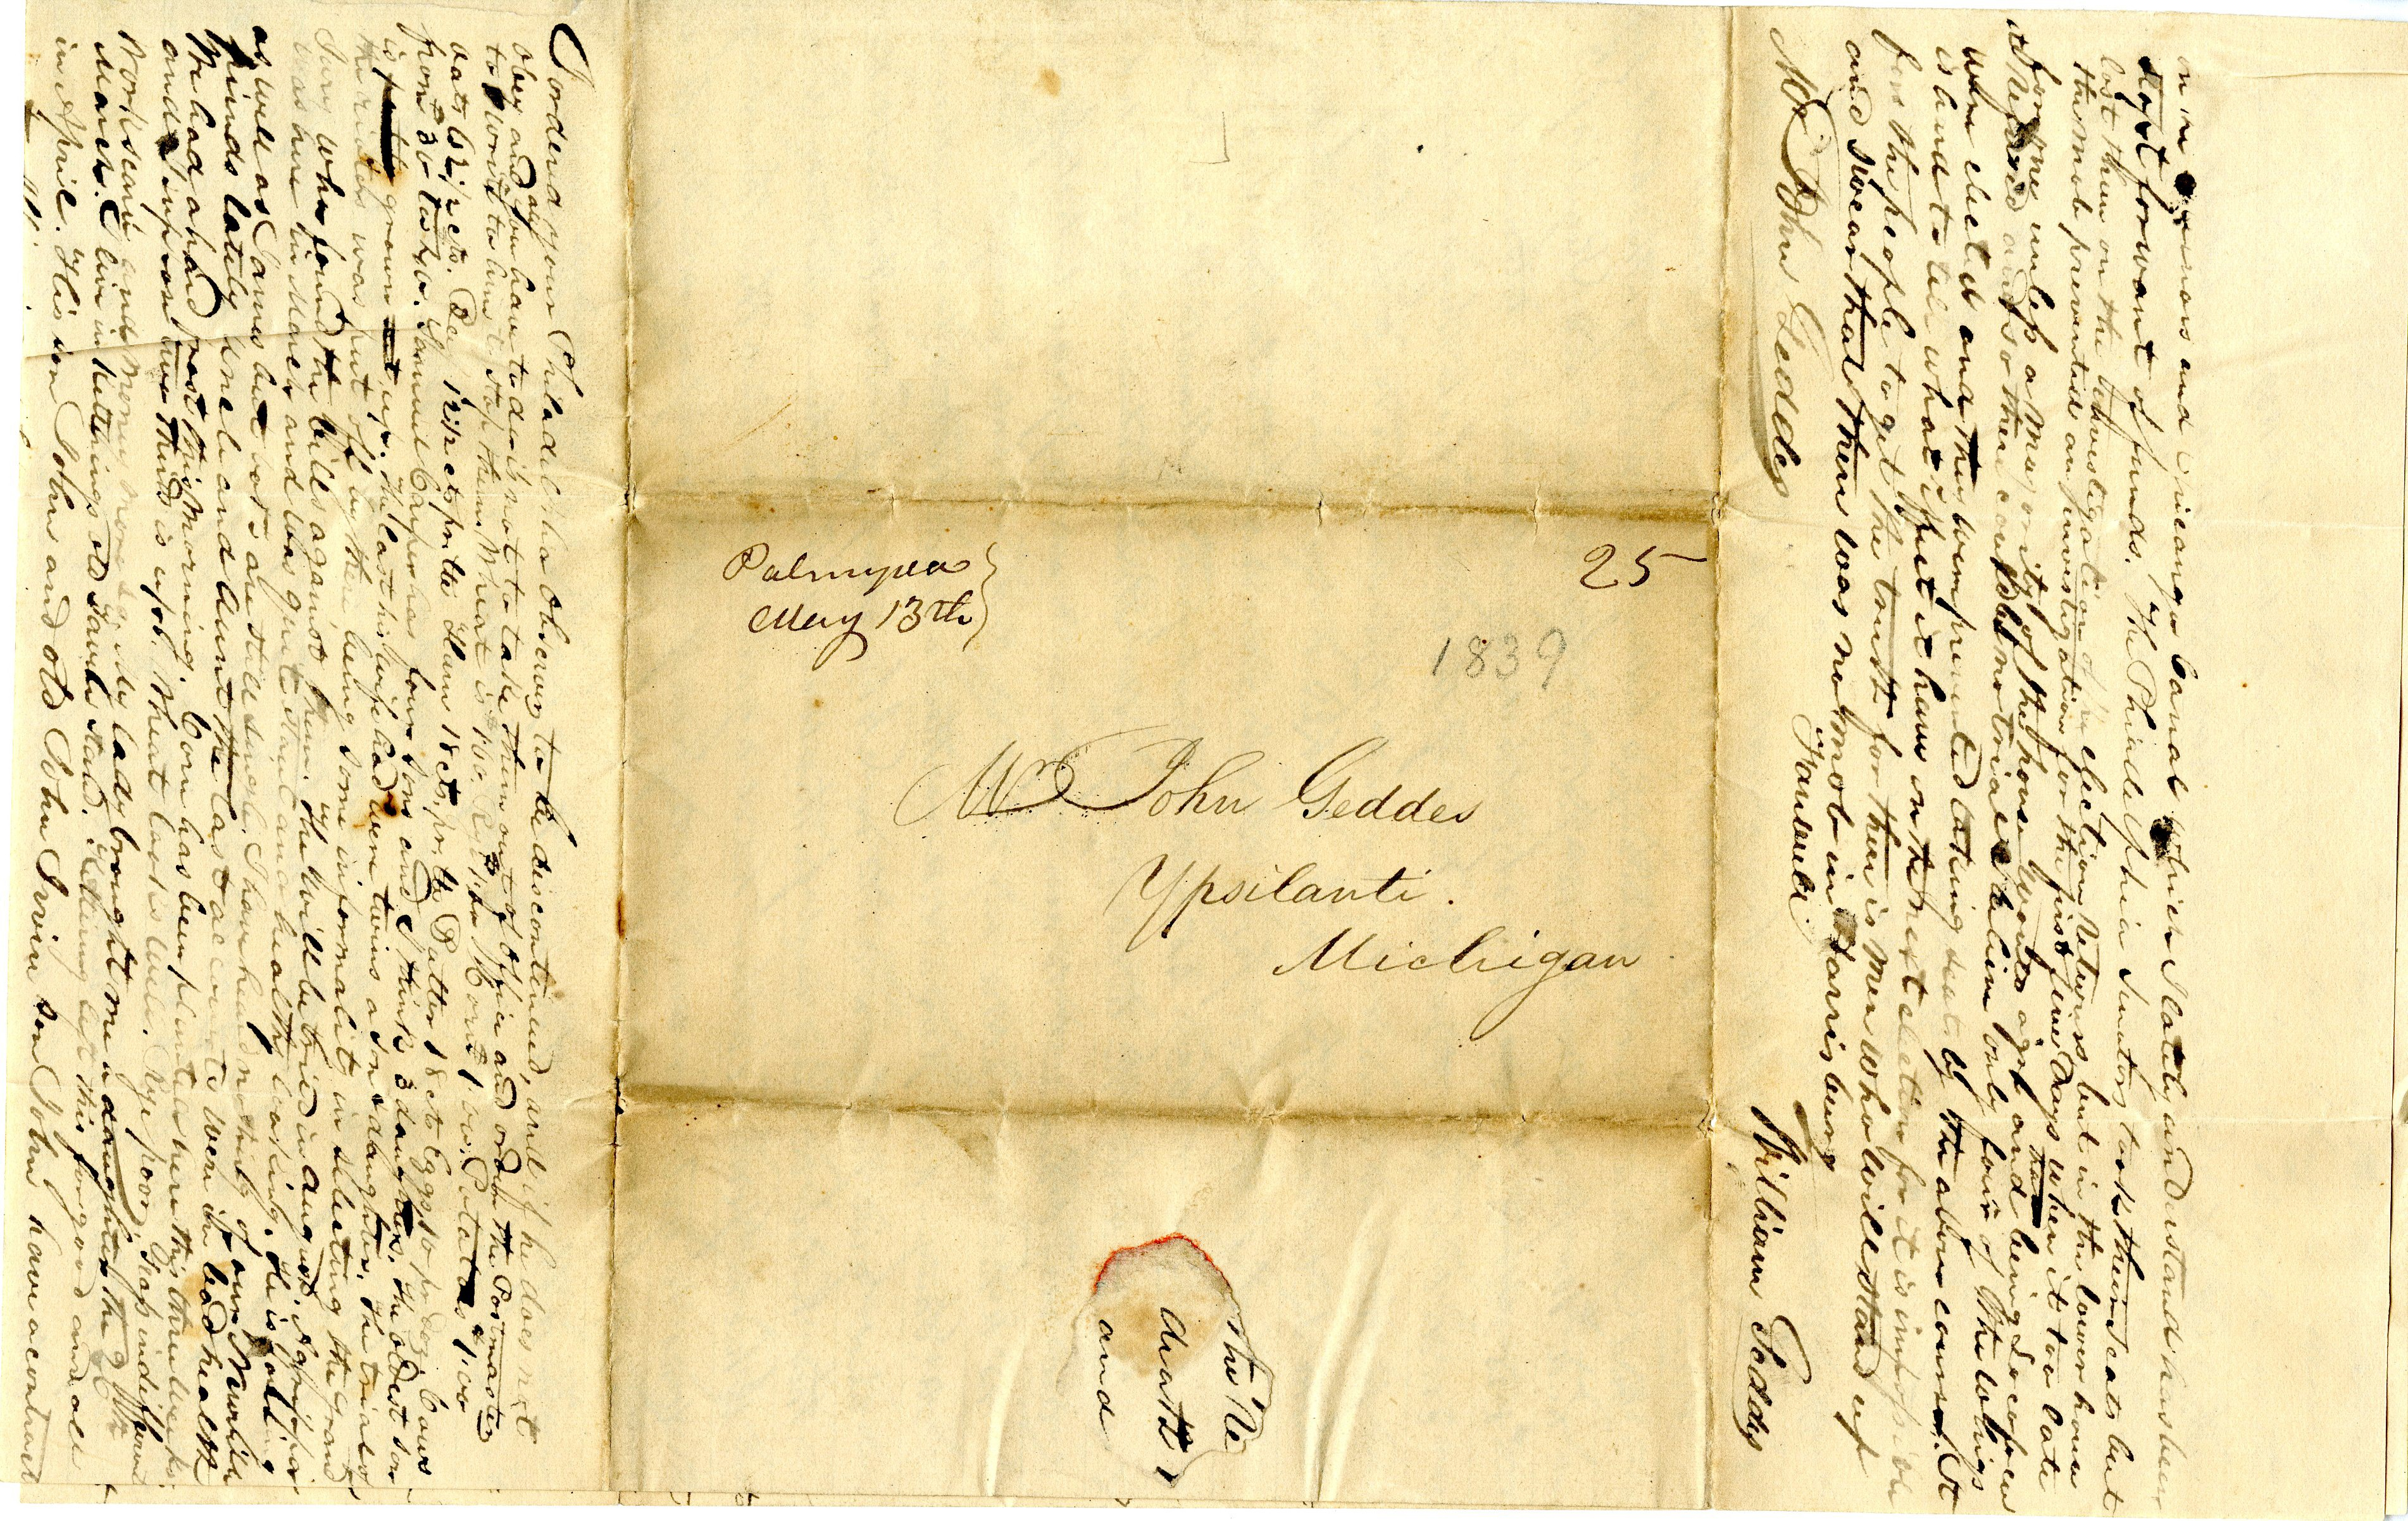 Letter From William Geddes to John Geddes, May 11, 1839 image